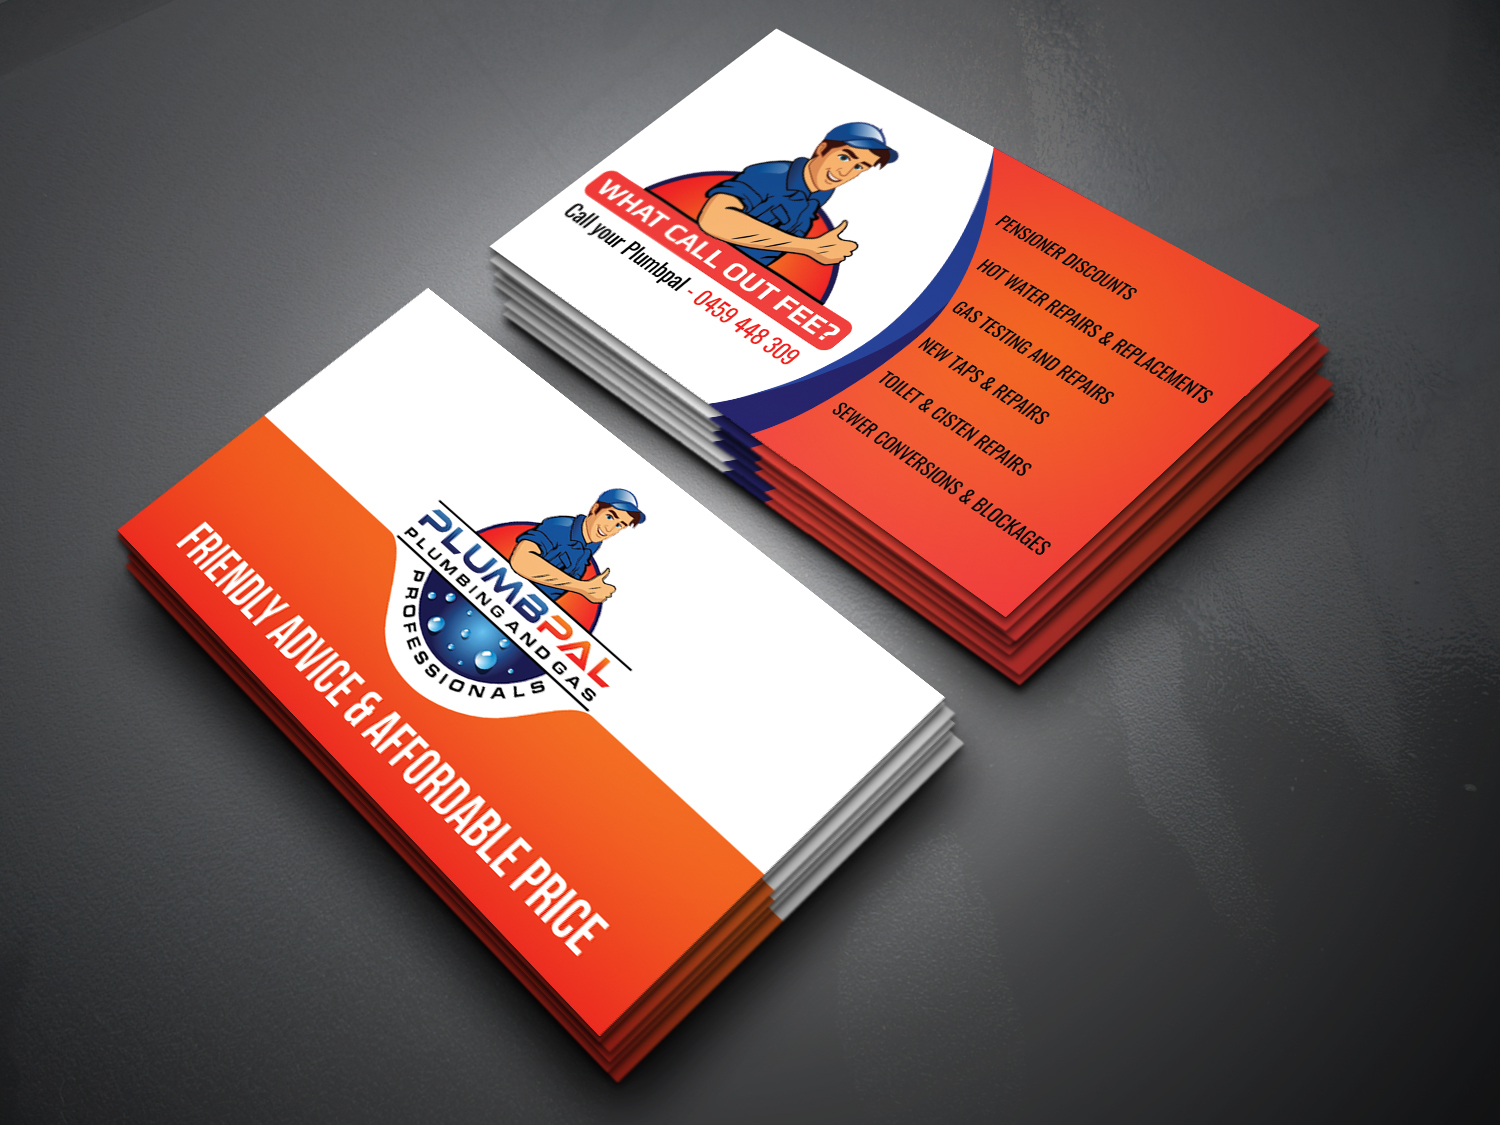 Business Card for Sample | aung ching - SEO & GRAPHICS DESIGNER